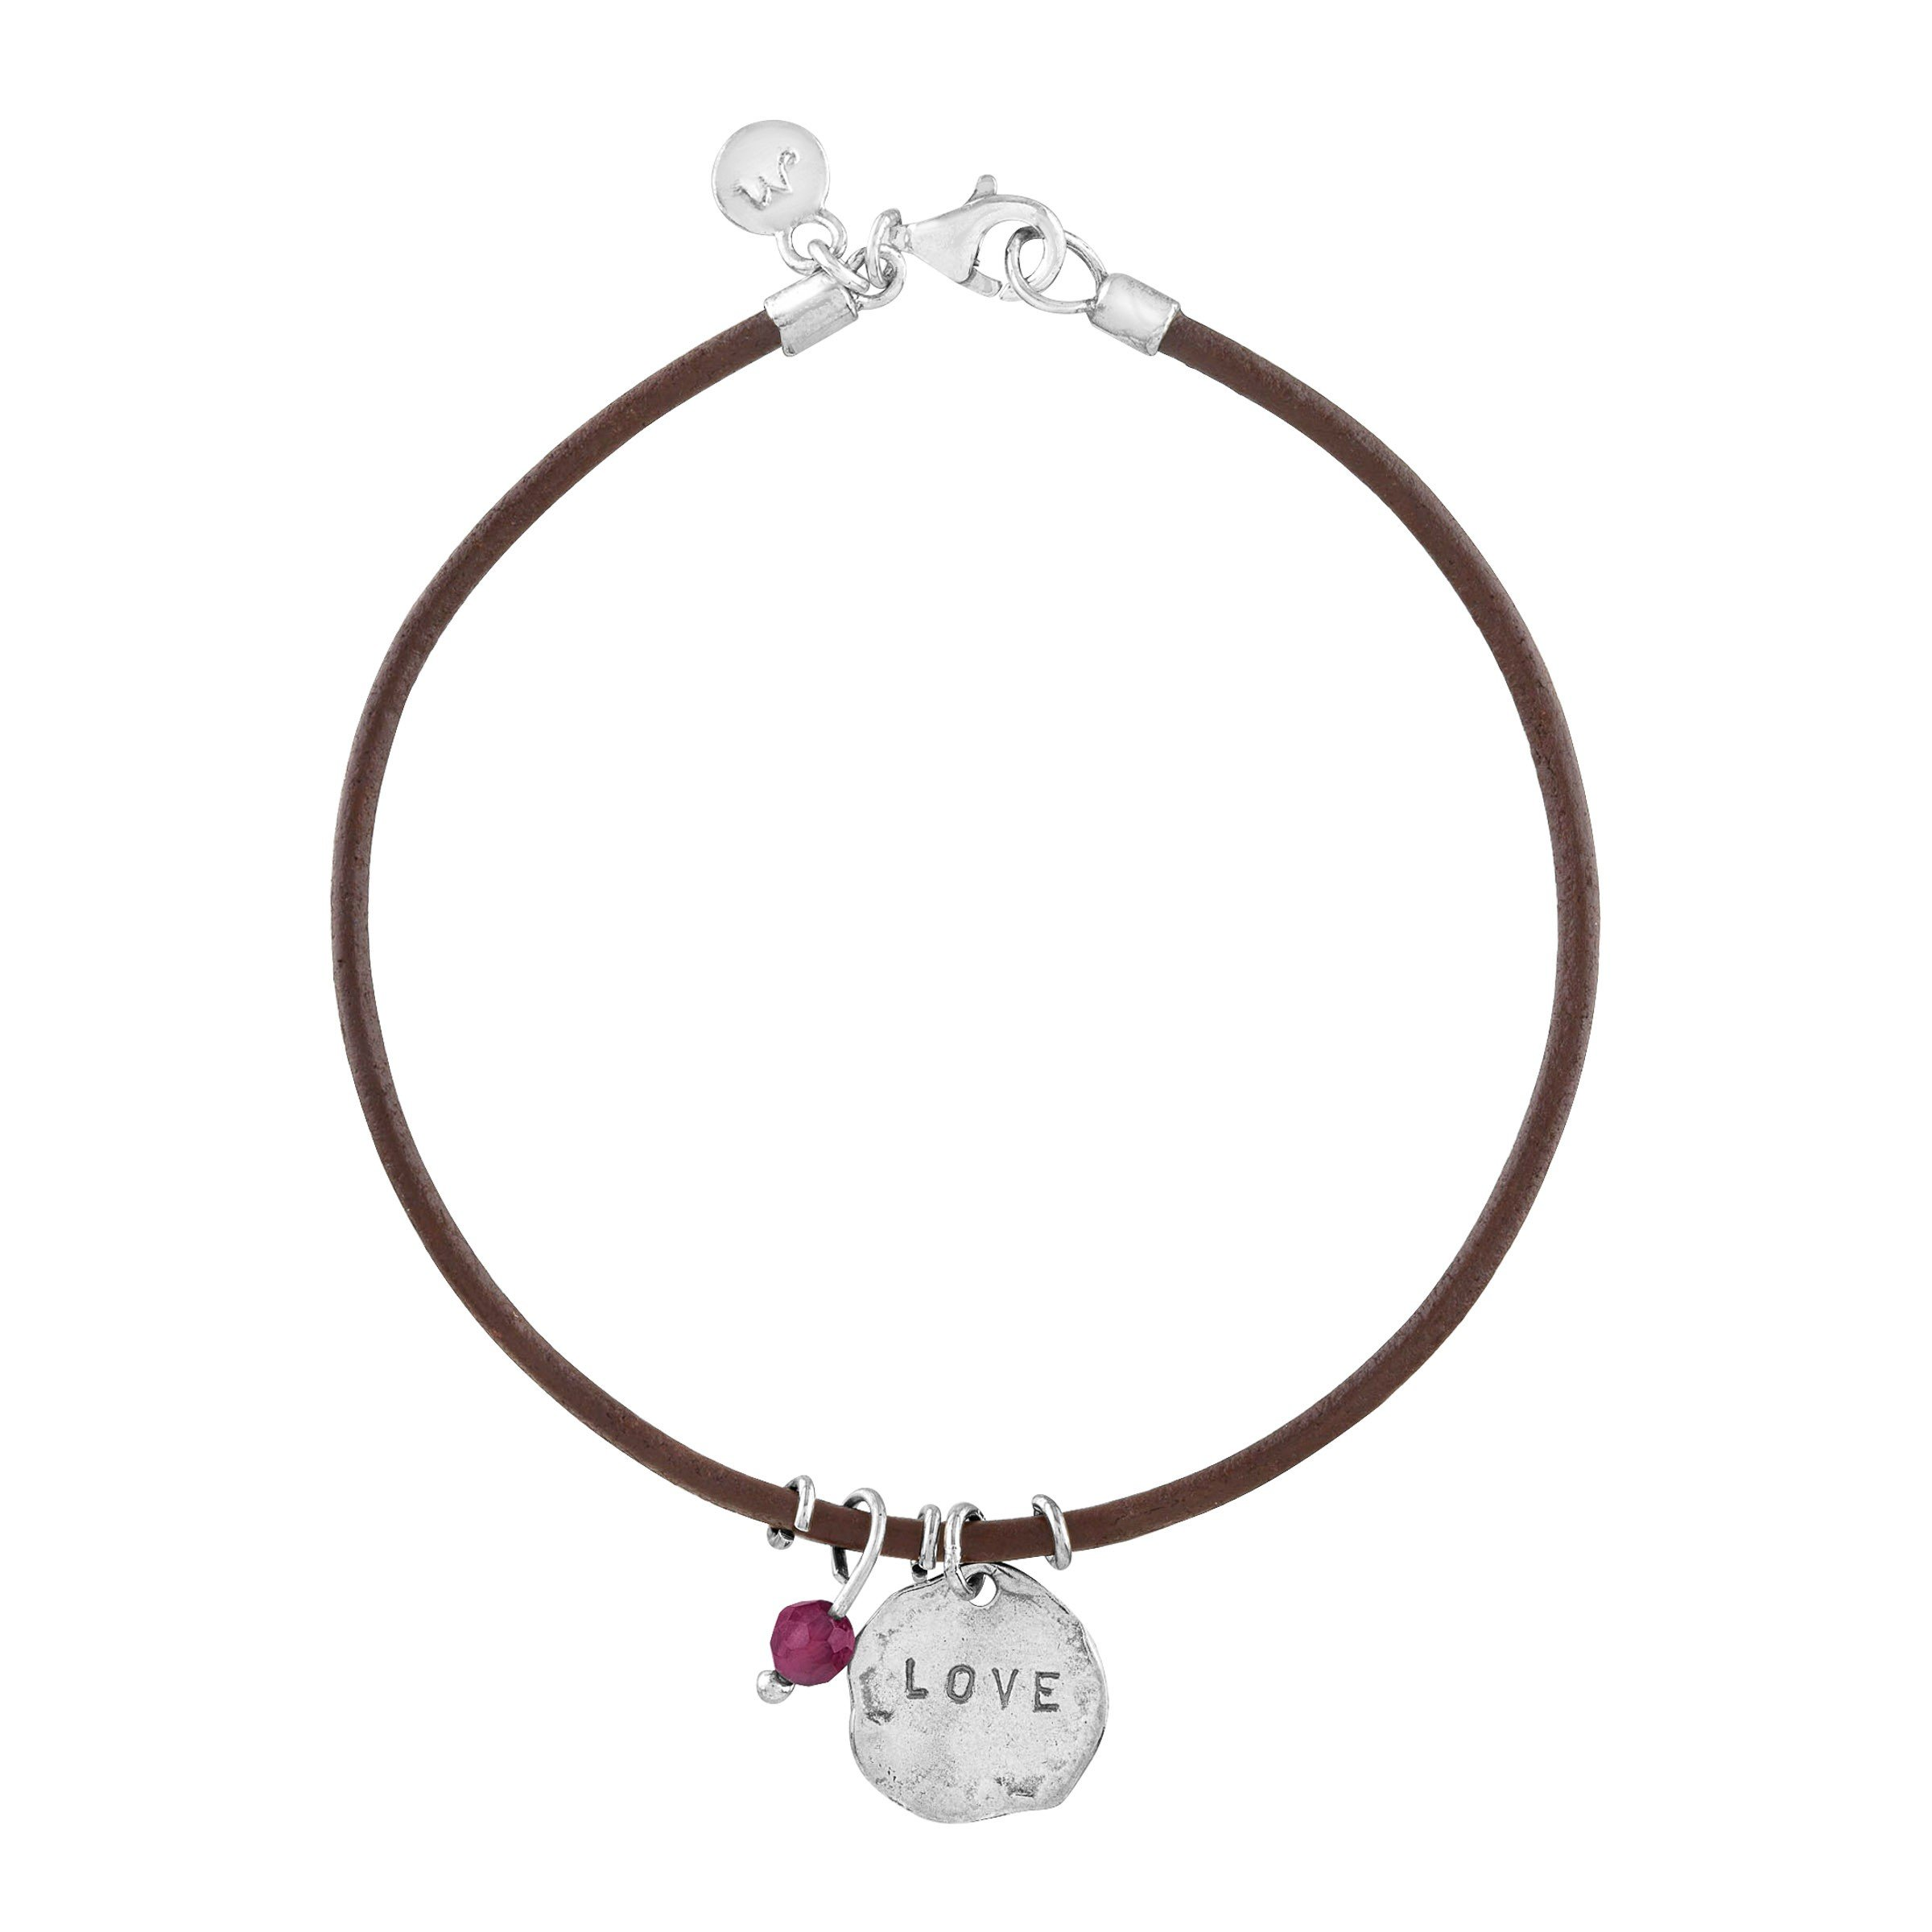 'Love' Leather Charm Bracelet with Natural Garnet in Sterling Silver